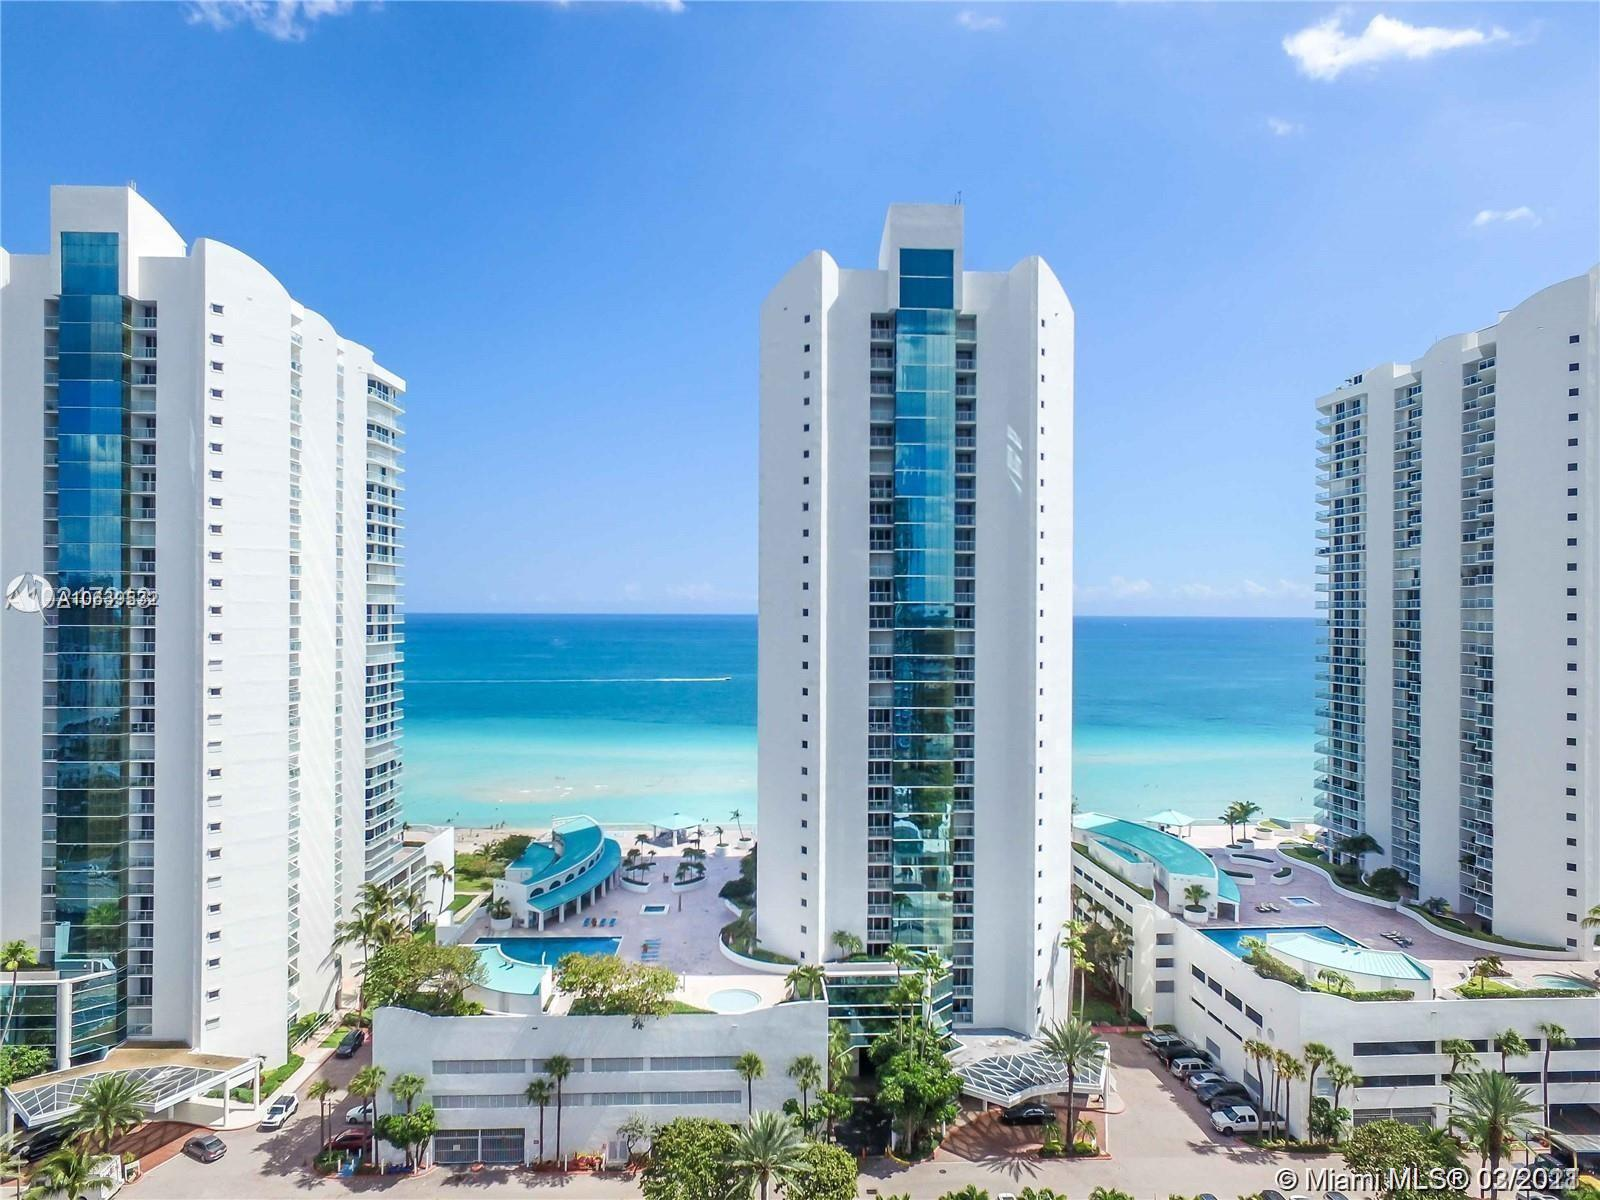 Oceania Two #221 - 16445 Collins #221, Sunny Isles Beach, FL 33160